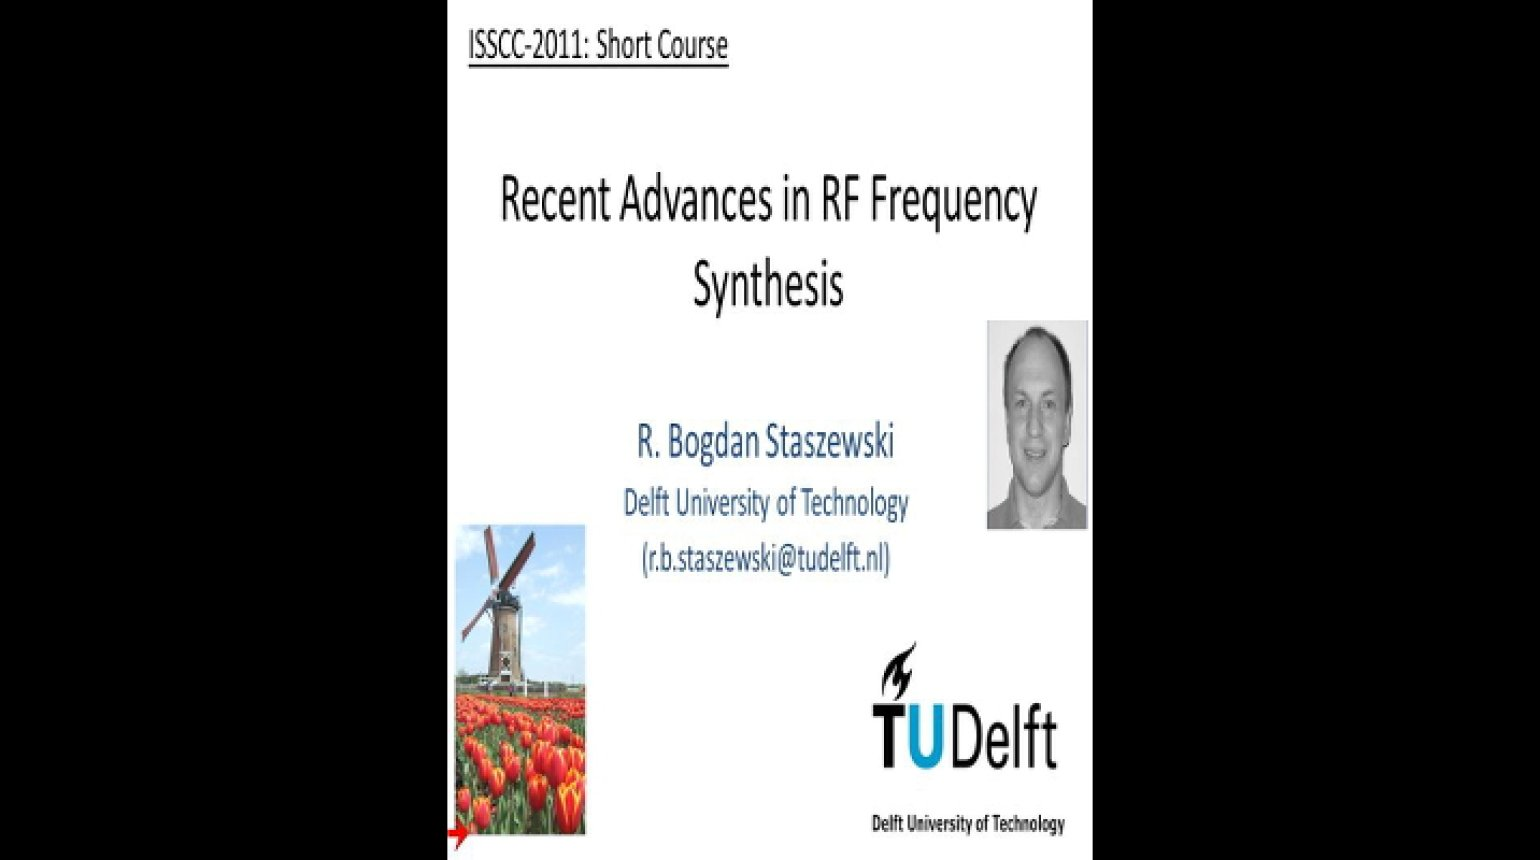 Recent Advances in RF Frequency Synthesis Video